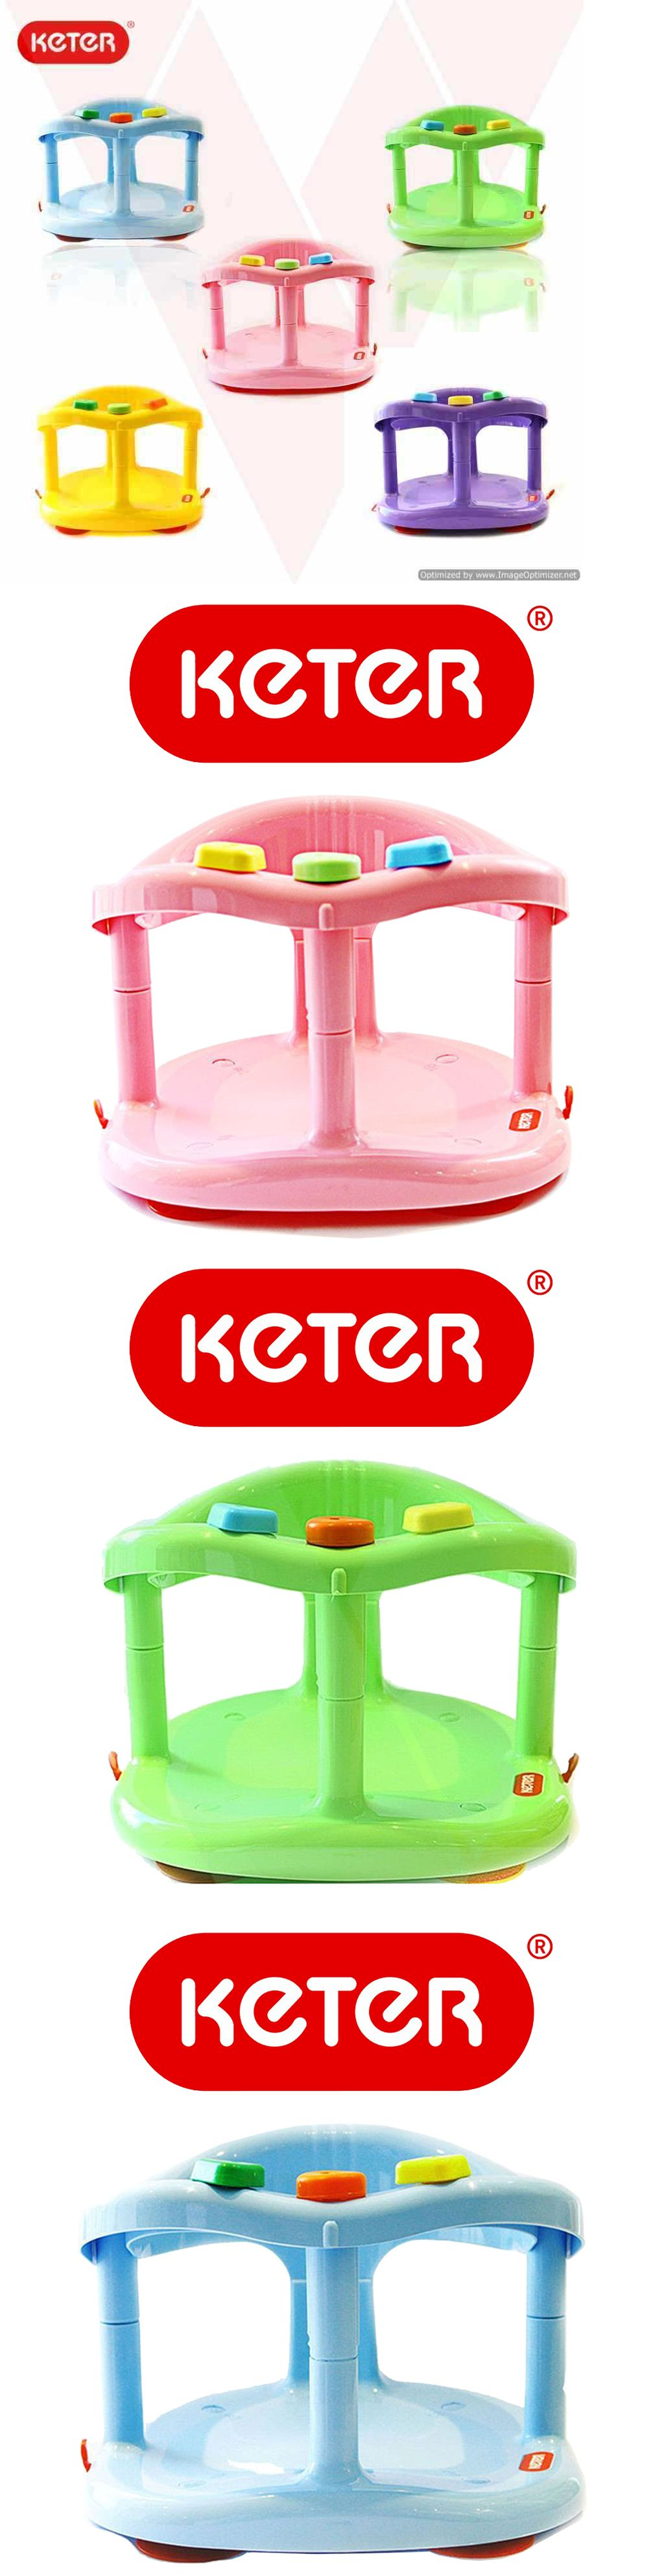 Keter - Baby Bath Tub Ring Seat Free Fast Shipping from USA | Bath ...